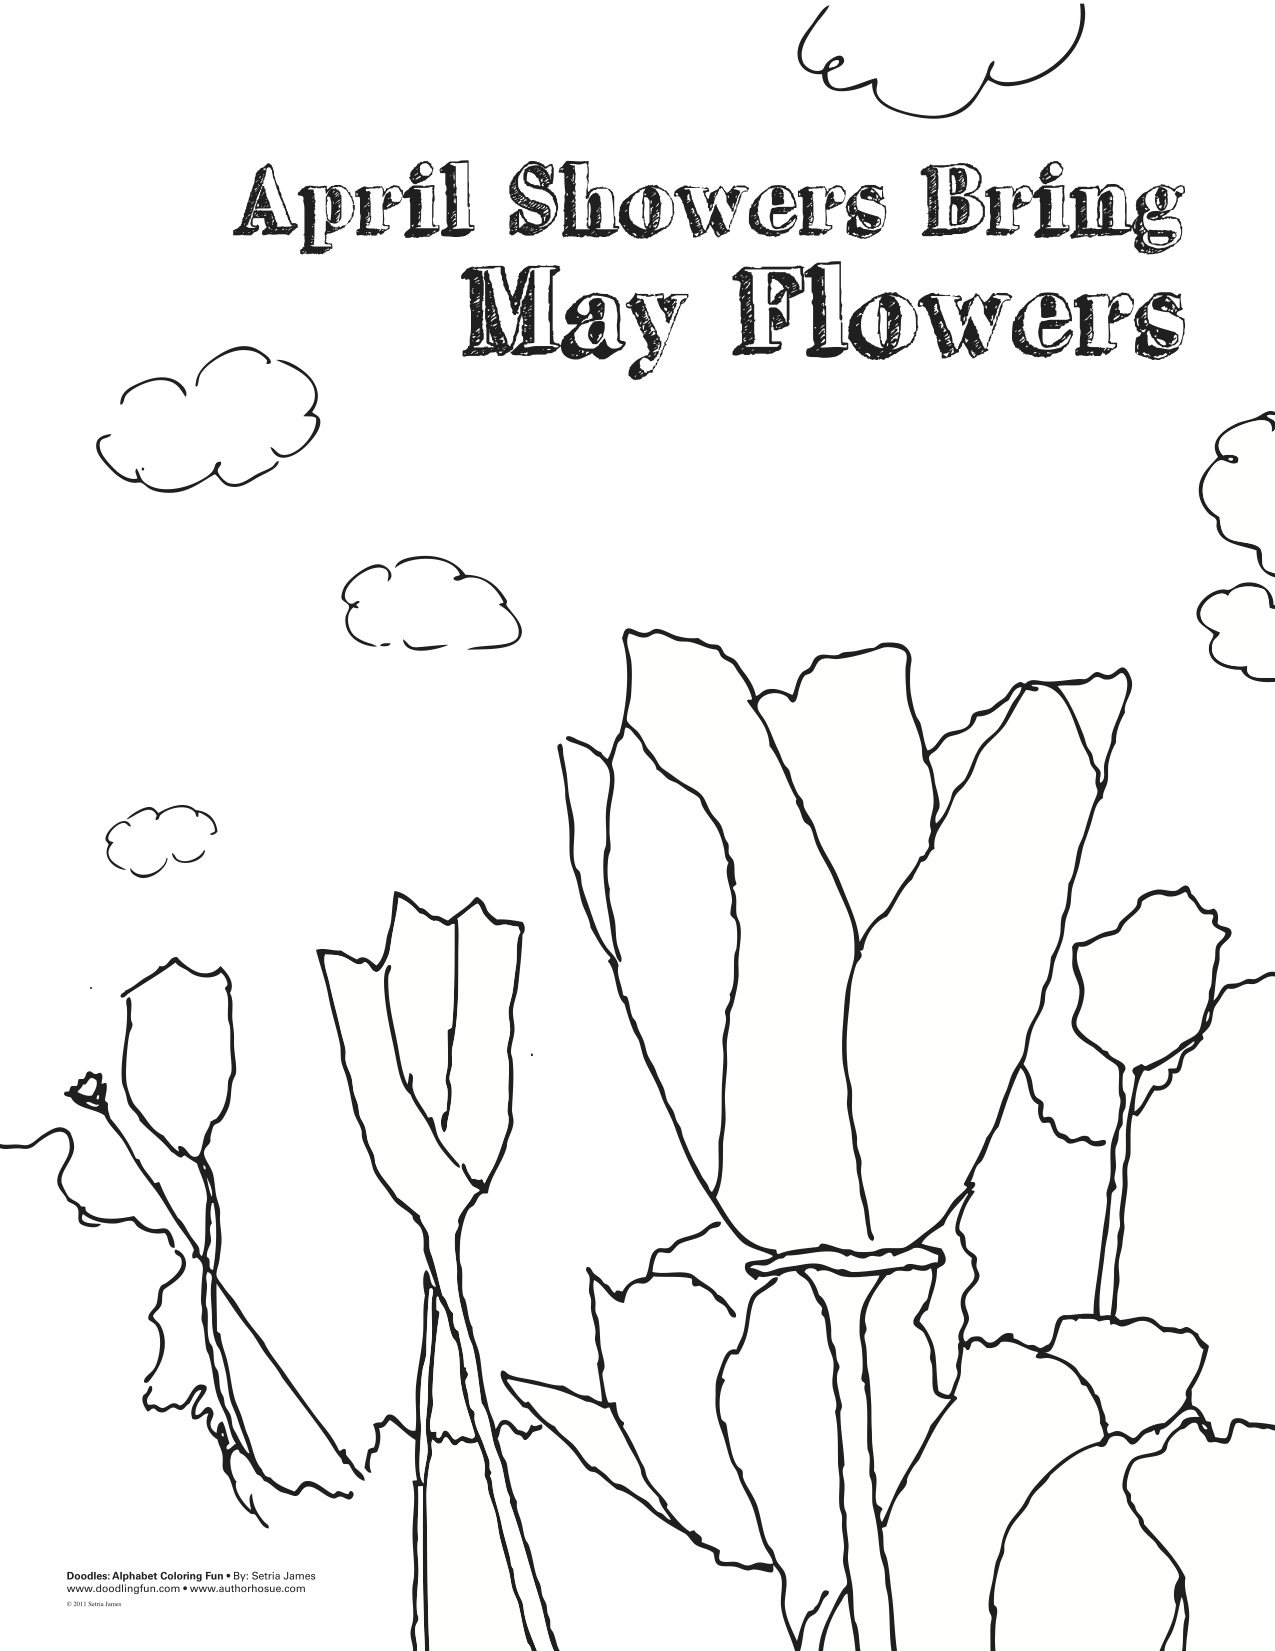 1275x1651 April Showers Bring May Flowers Coloring Page, April Showers